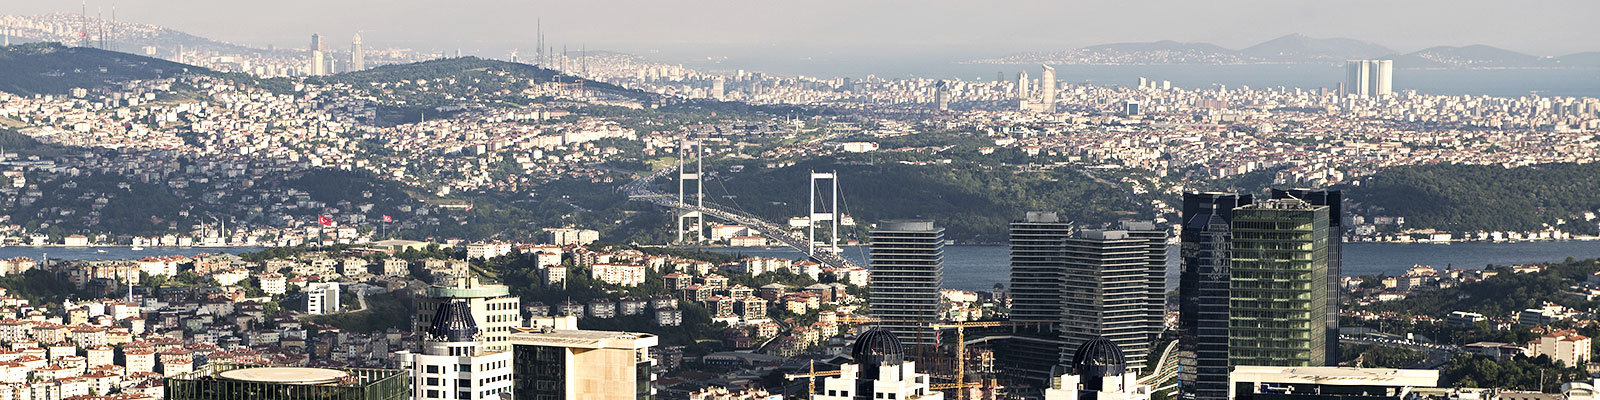 Cityscape with Bosphorus view, Istanbul, Turkey